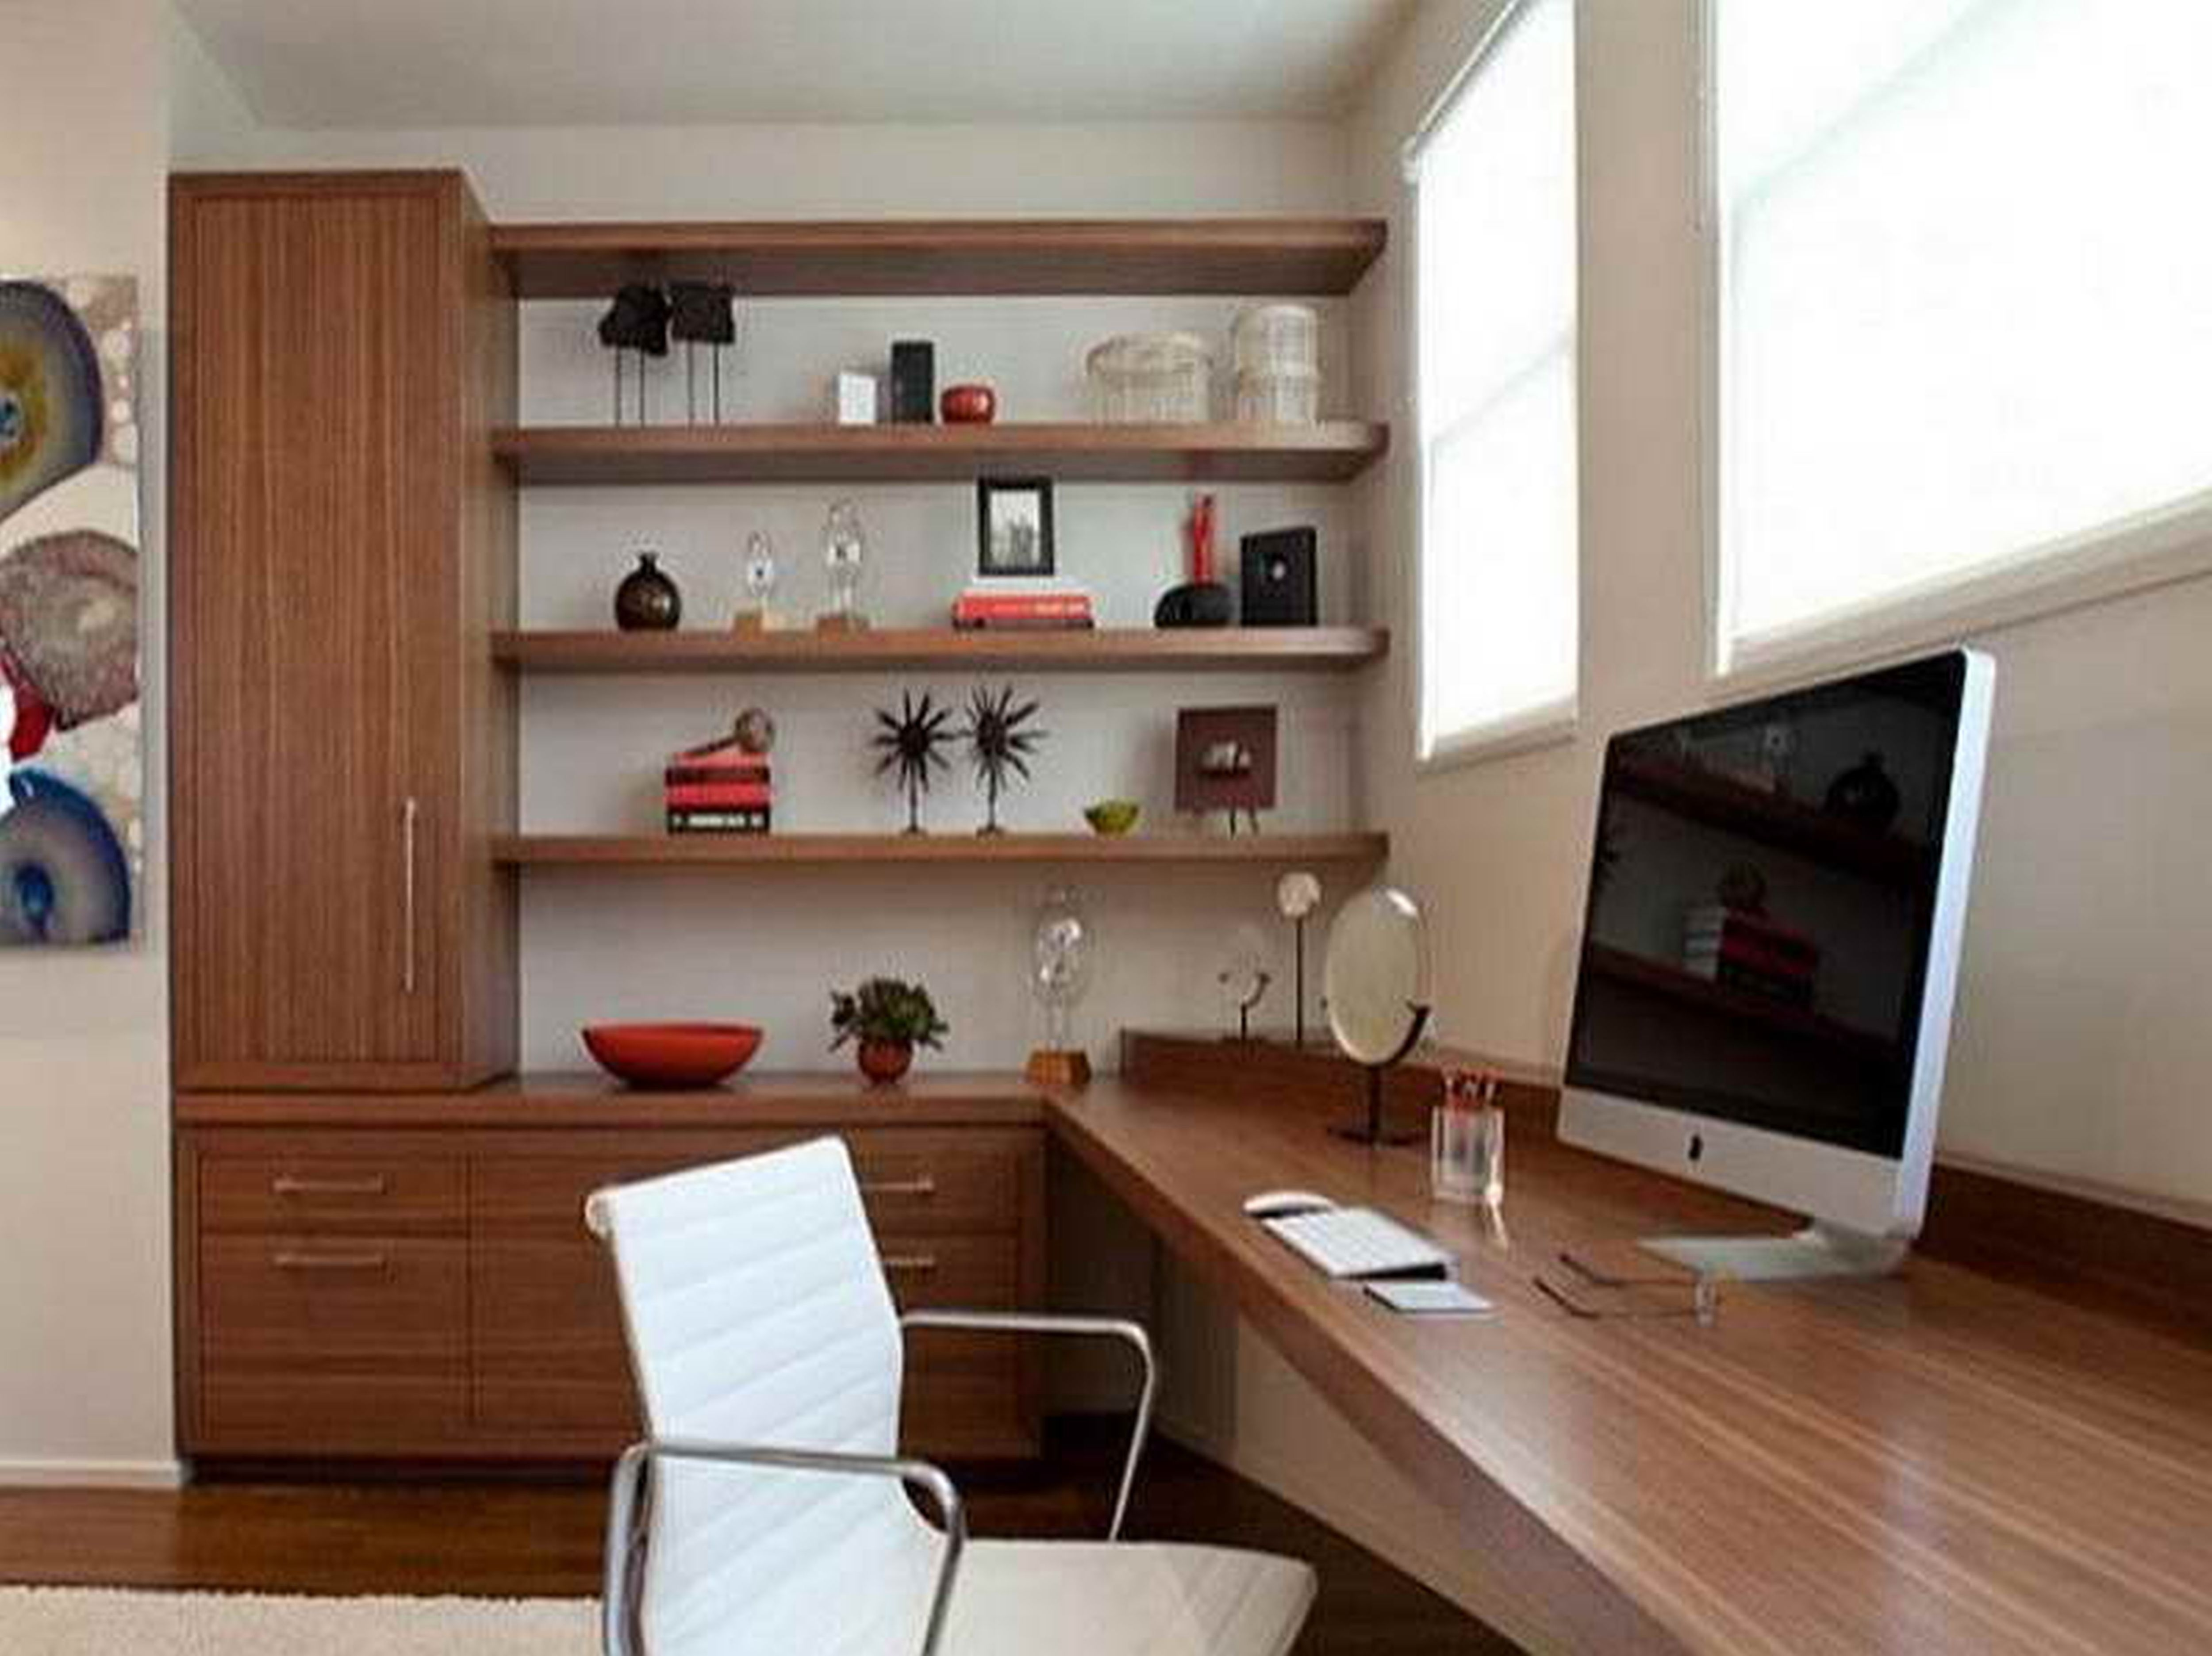 Appealing office decor themes engaging bedroom decorating home interior design tips awesome  also rh in pinterest